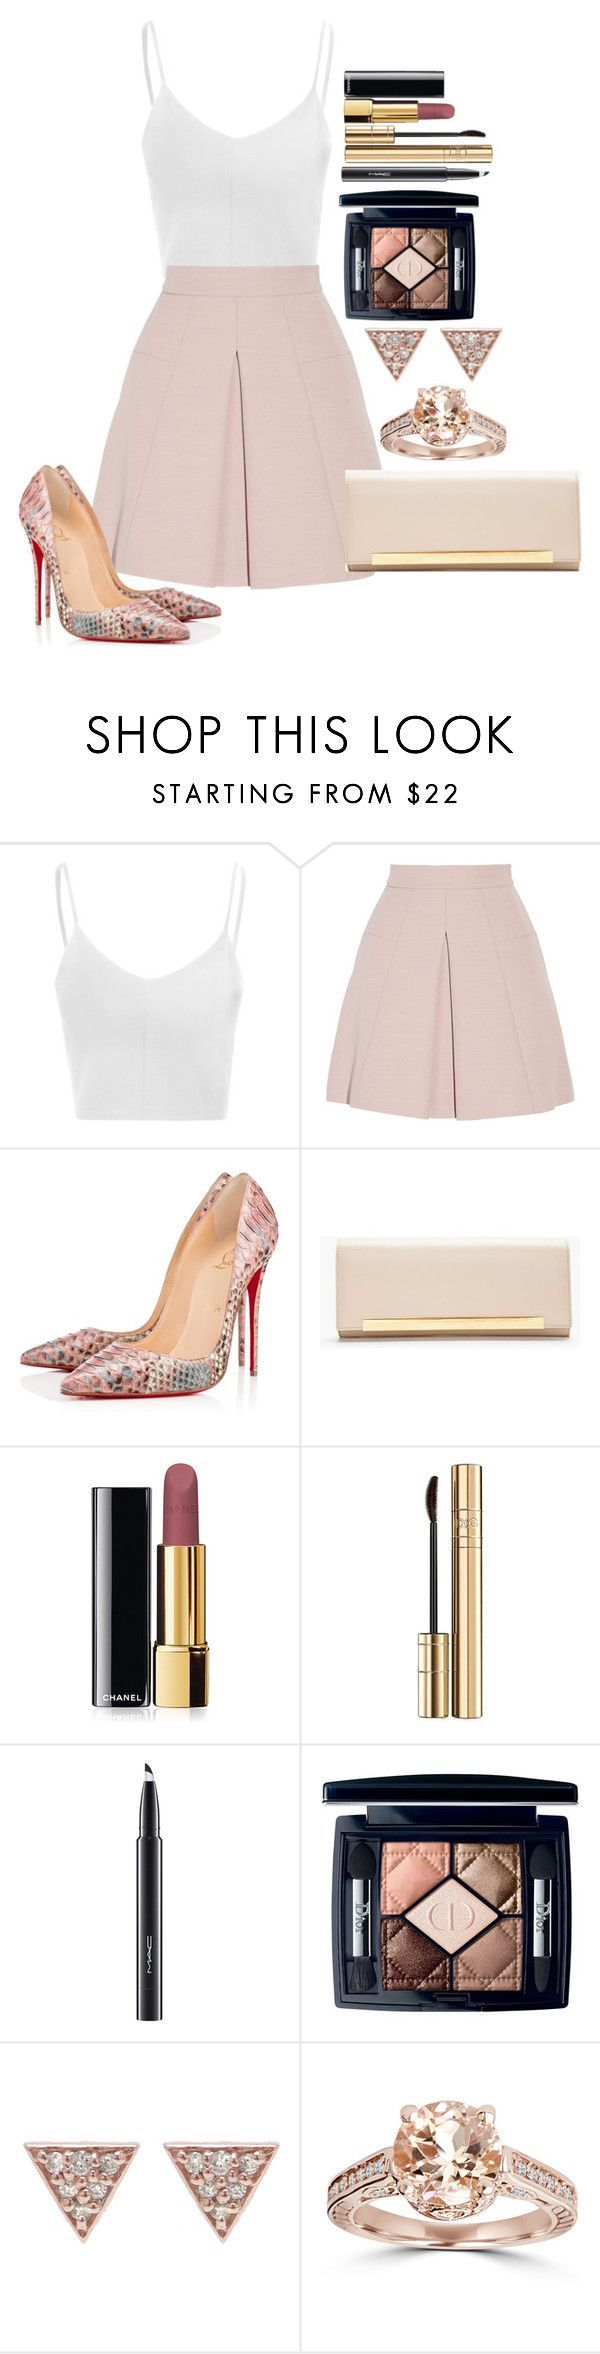 """""""Untitled #1269"""" by fabianarveloc on Polyvore featuring Glamorous, Alexander McQueen, Christian Louboutin, Yves Saint Laurent, Chanel, Dolce&Gabbana, MAC Cosmetics, Christian Dior and ADORNIA"""